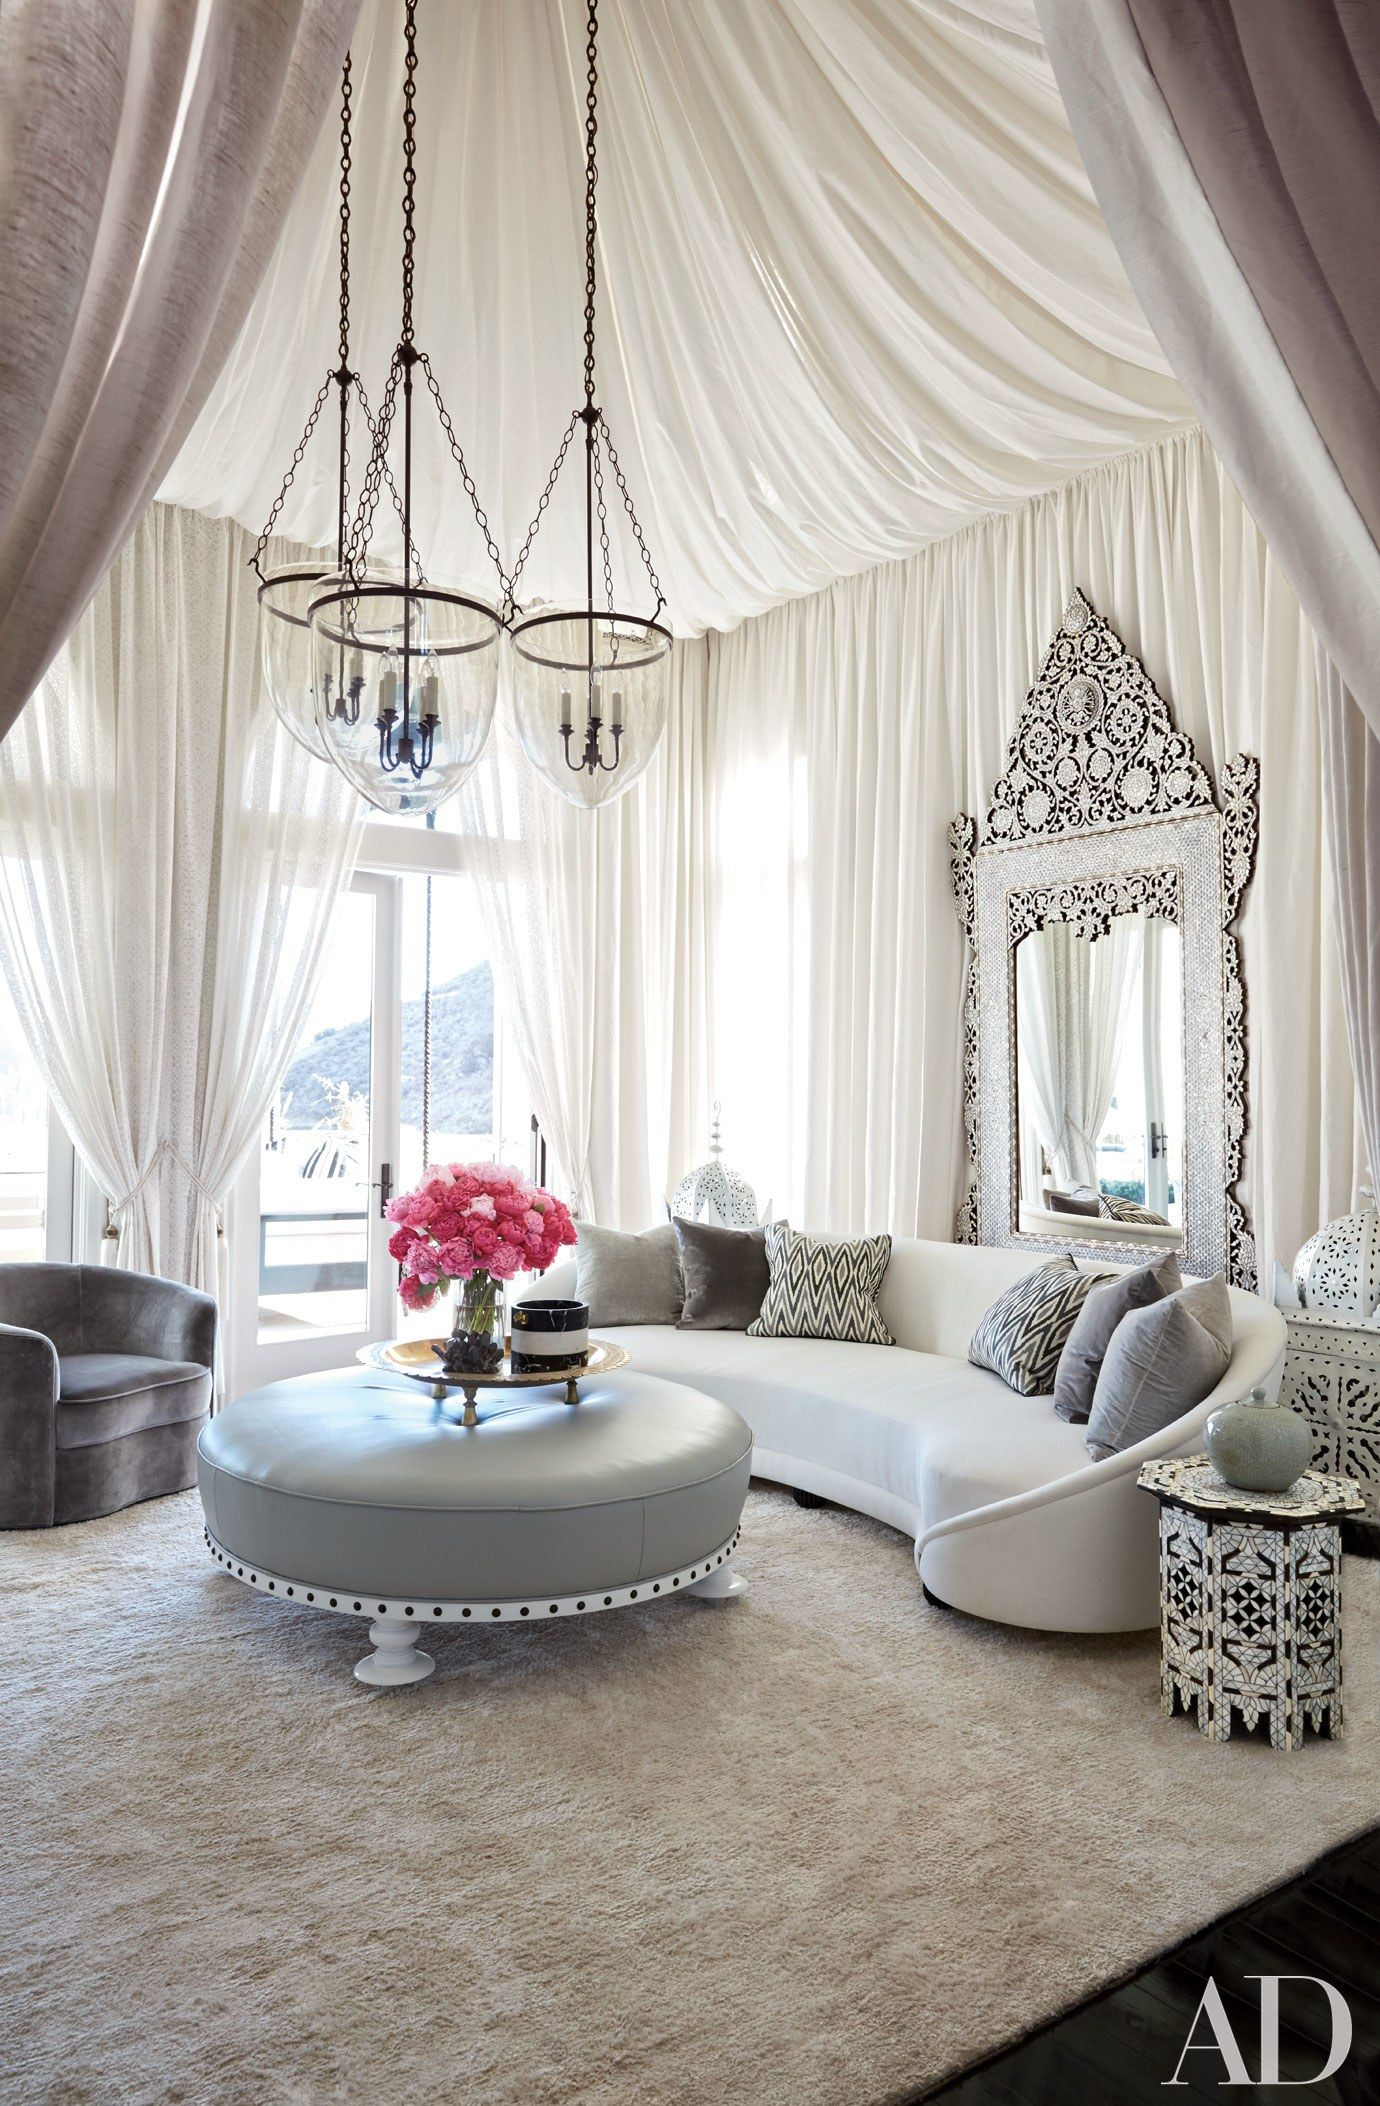 Interior Designers on Great Design for Every Style | Interiors ...